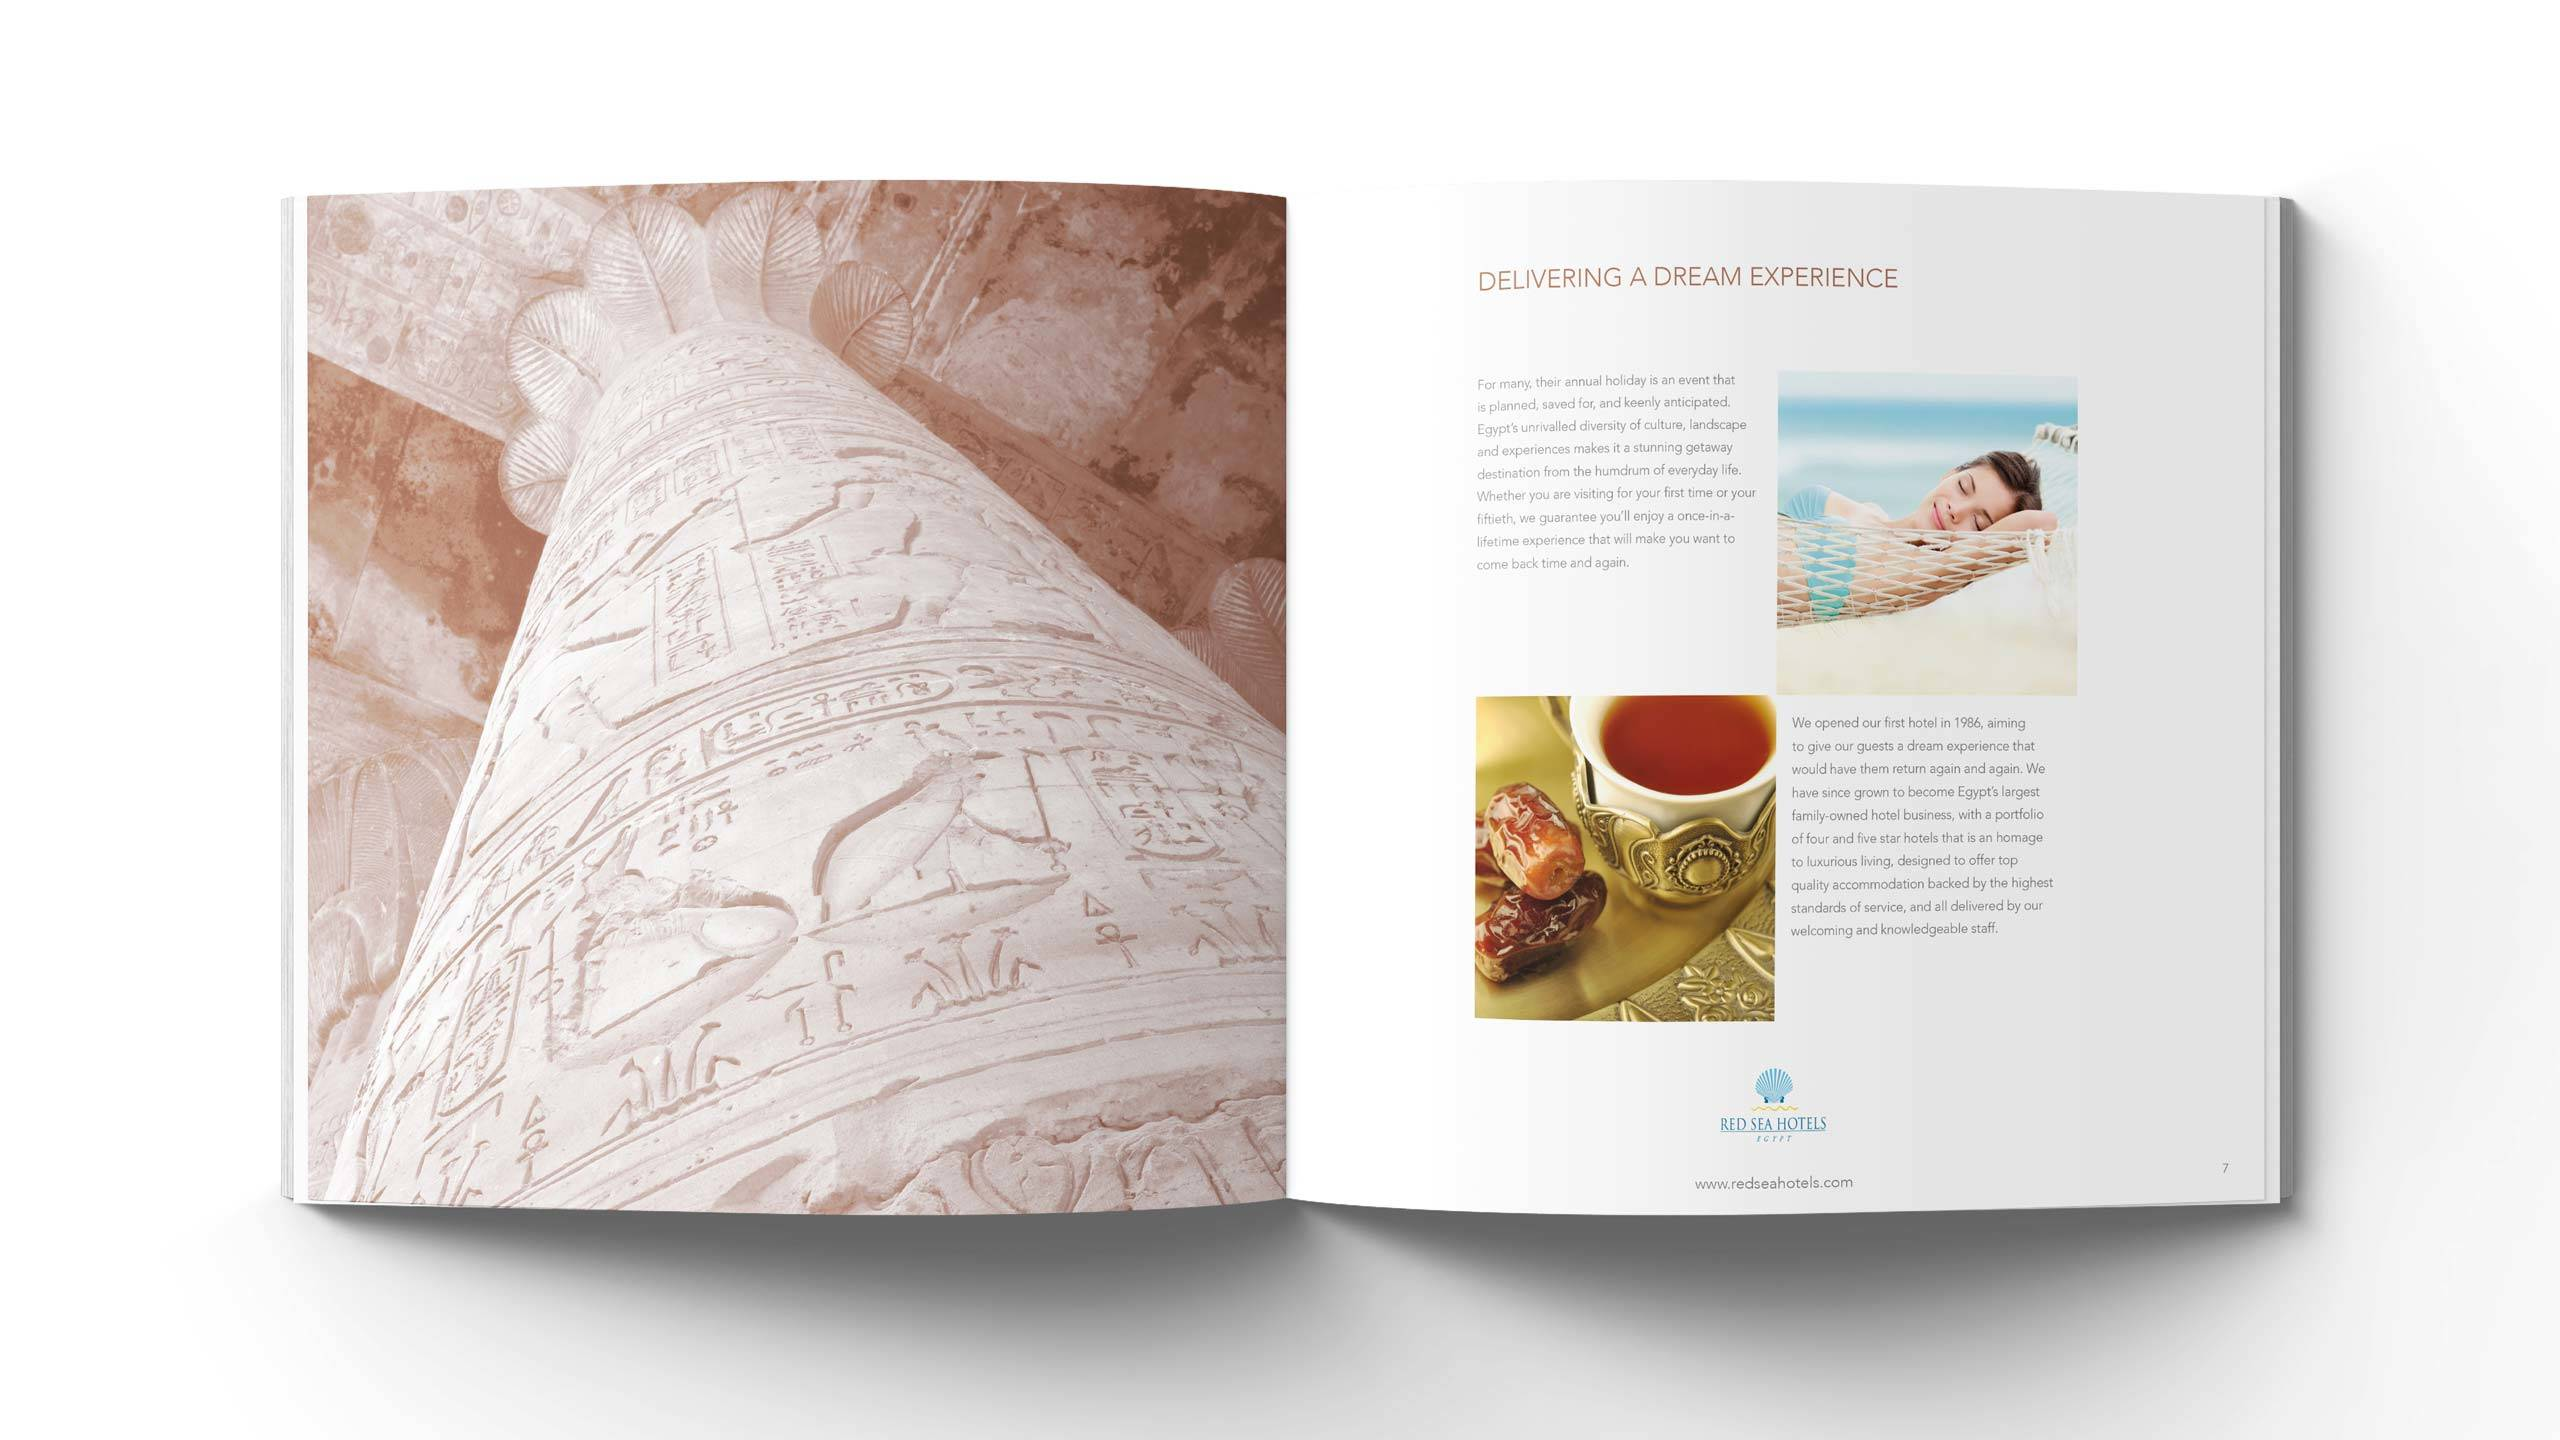 luxury hotels brochure design dream experience pages red sea hotels